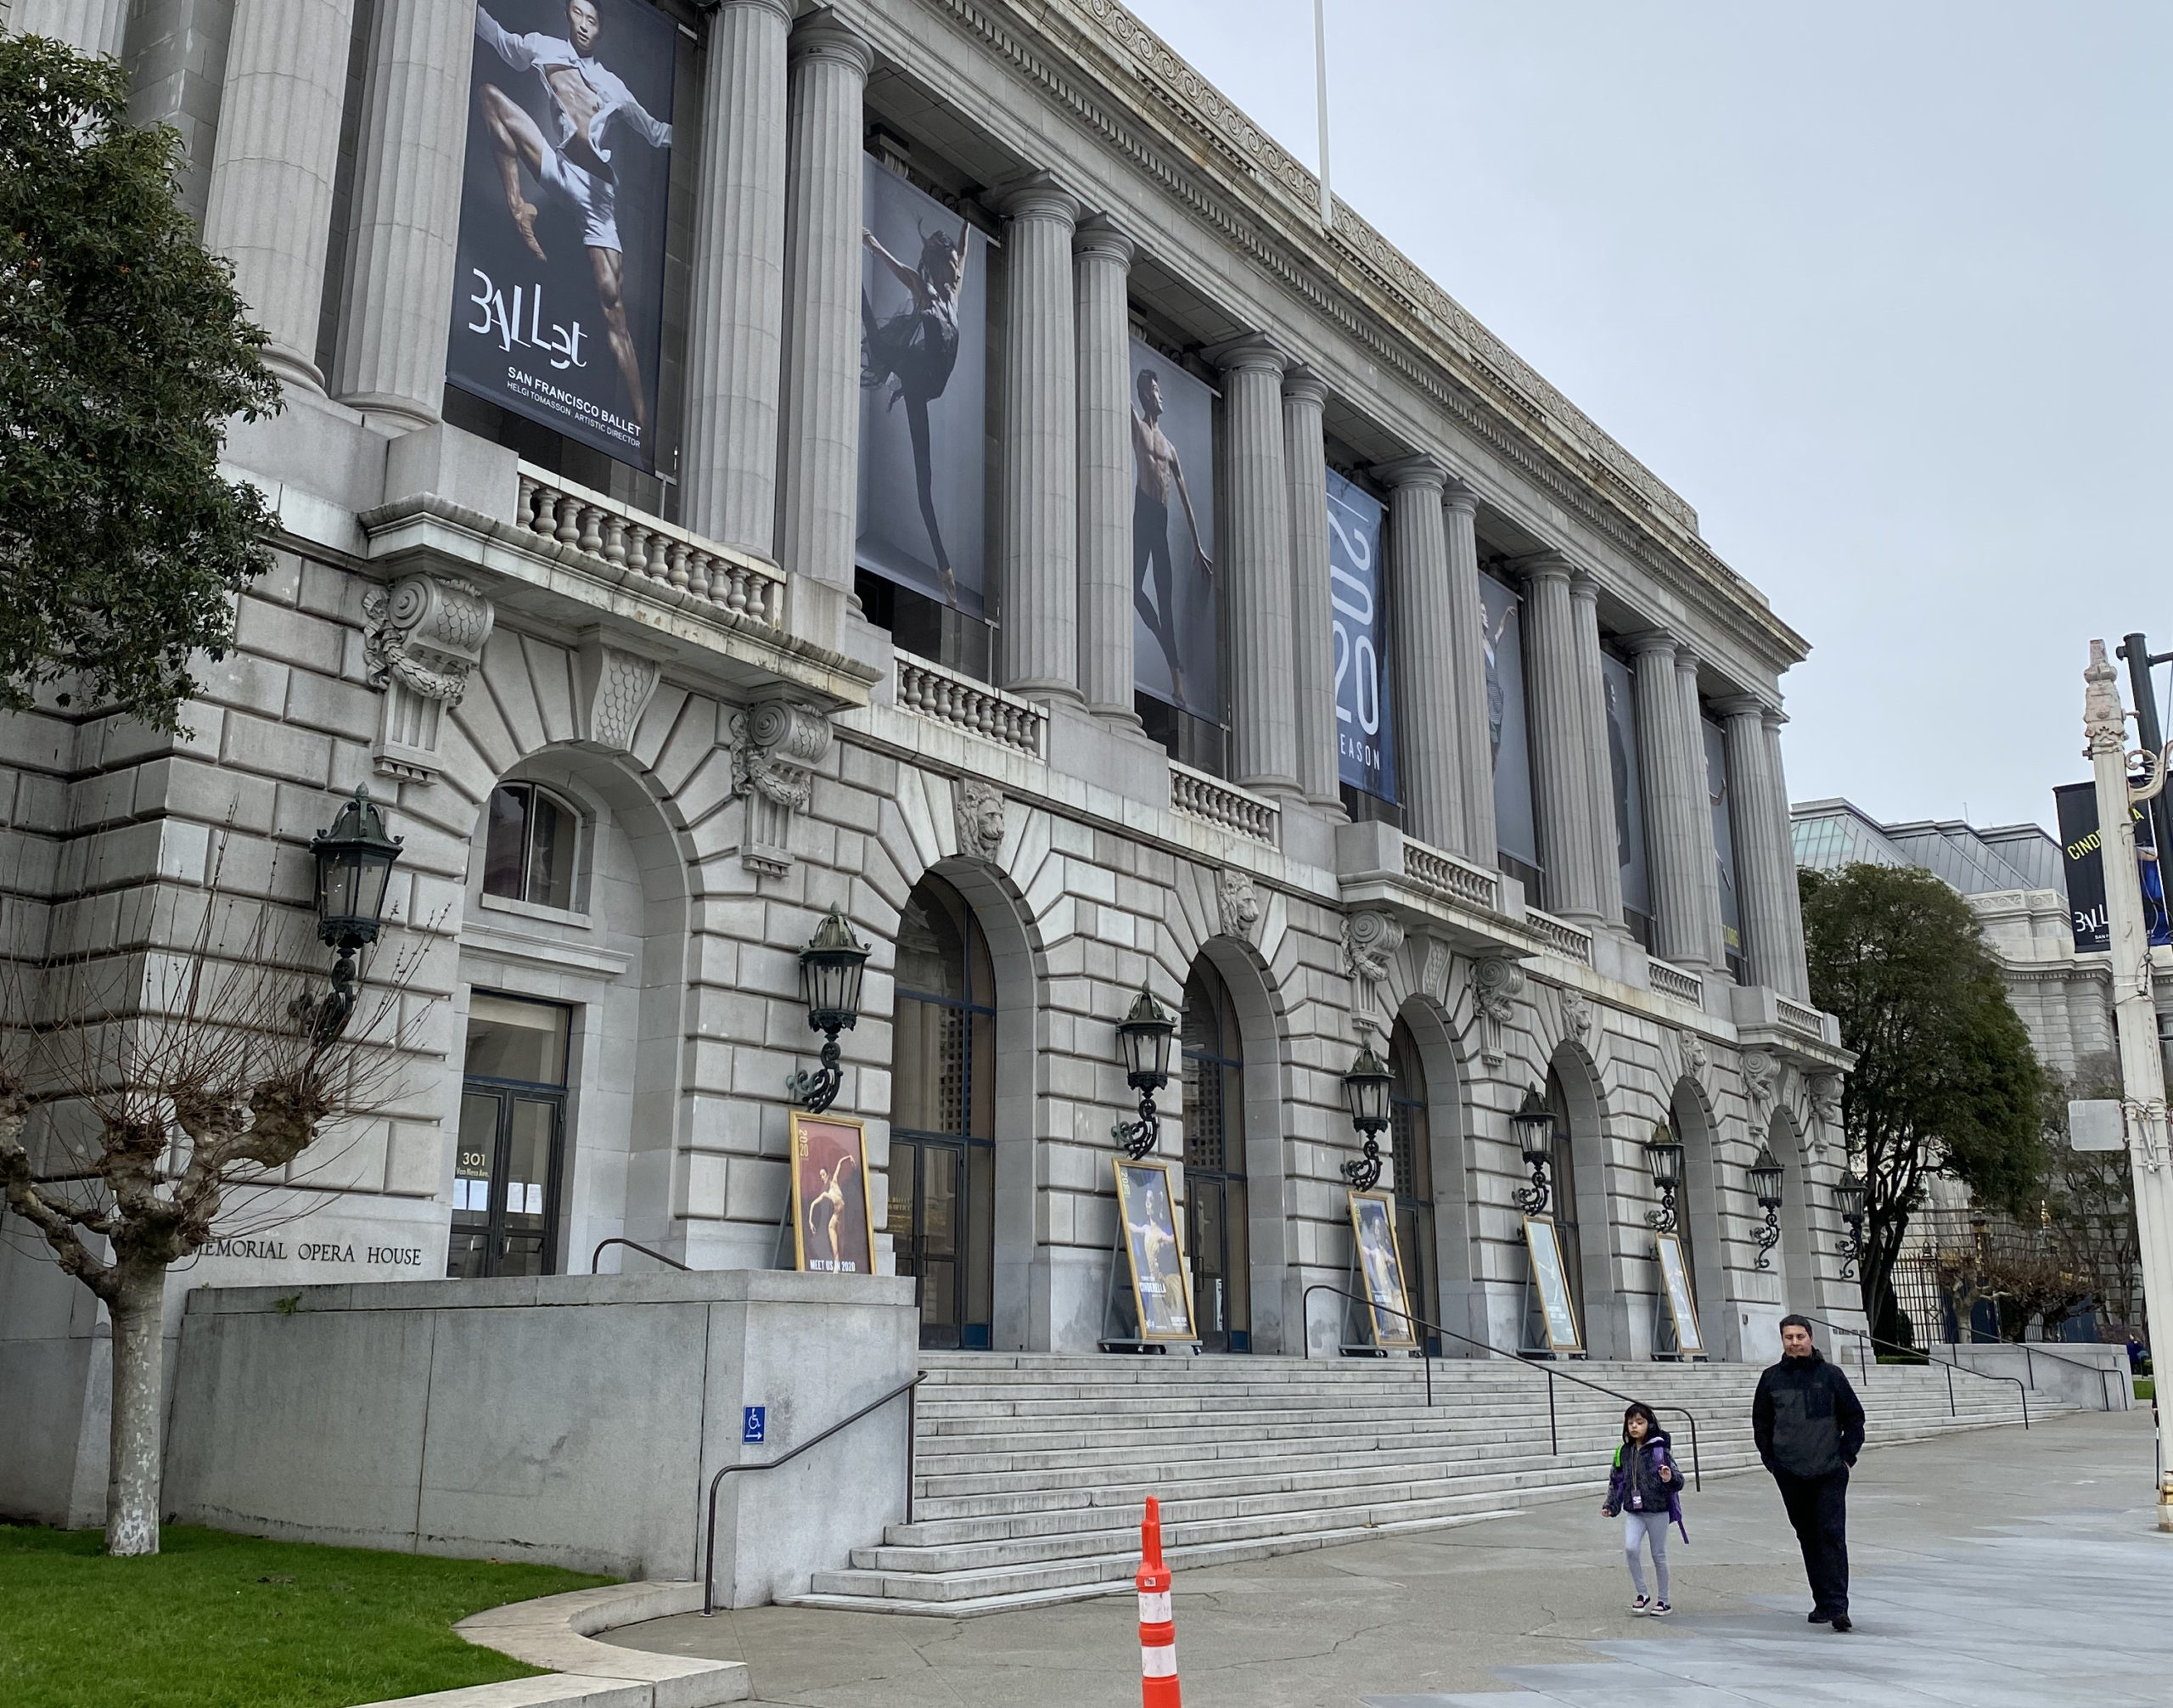 SAN FRANCISCO BALLET SUSPENDS PERFORMANCES OF JEWELS, APRIL 15 – 21, AND ROMEO & JULIET, MAY 1 – 10